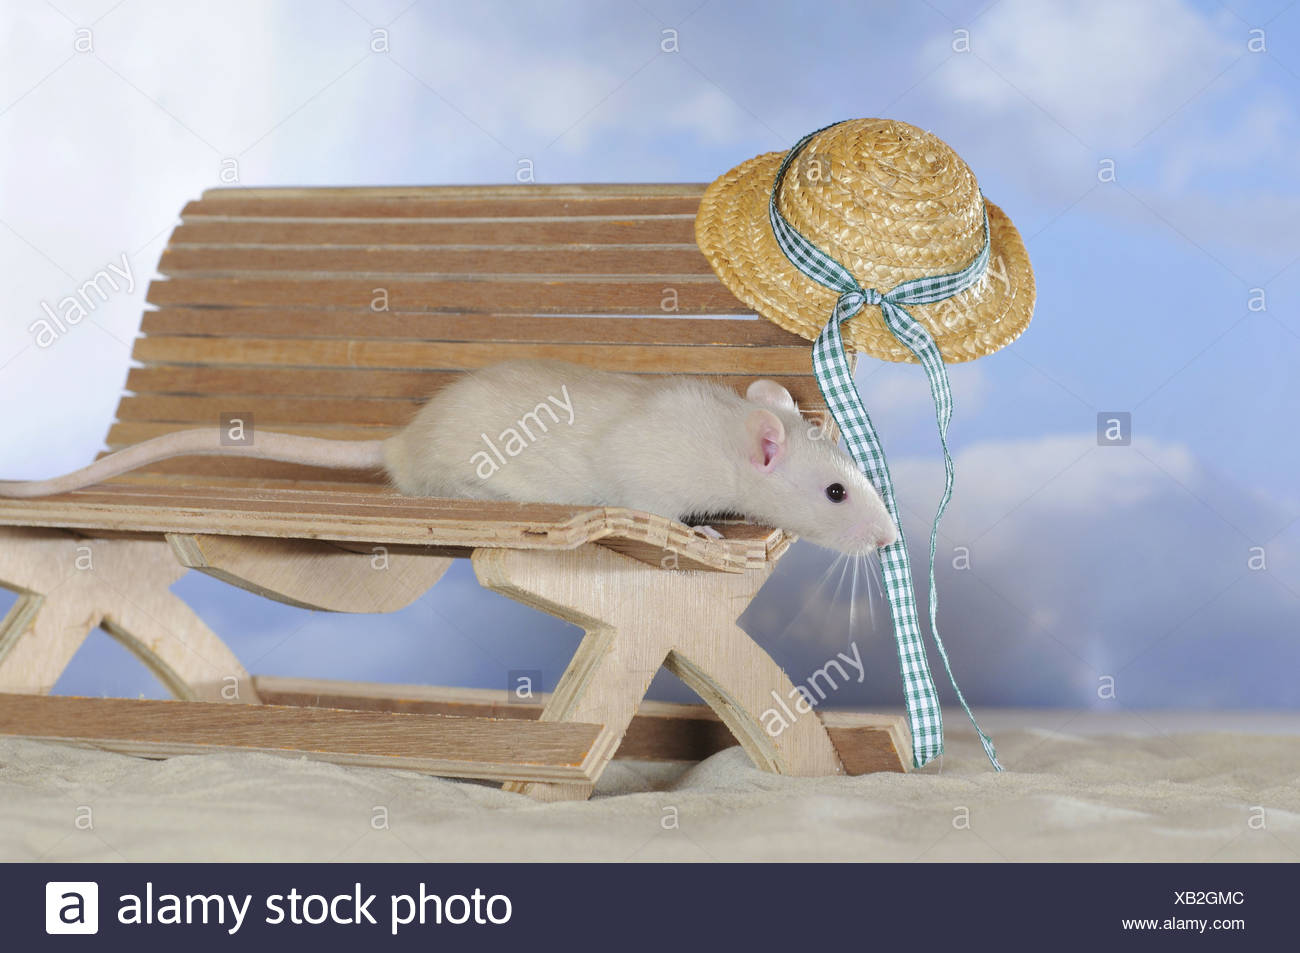 Peachy Fancy Rat Cream Coloured On A Small Wooden Bench With A Gmtry Best Dining Table And Chair Ideas Images Gmtryco